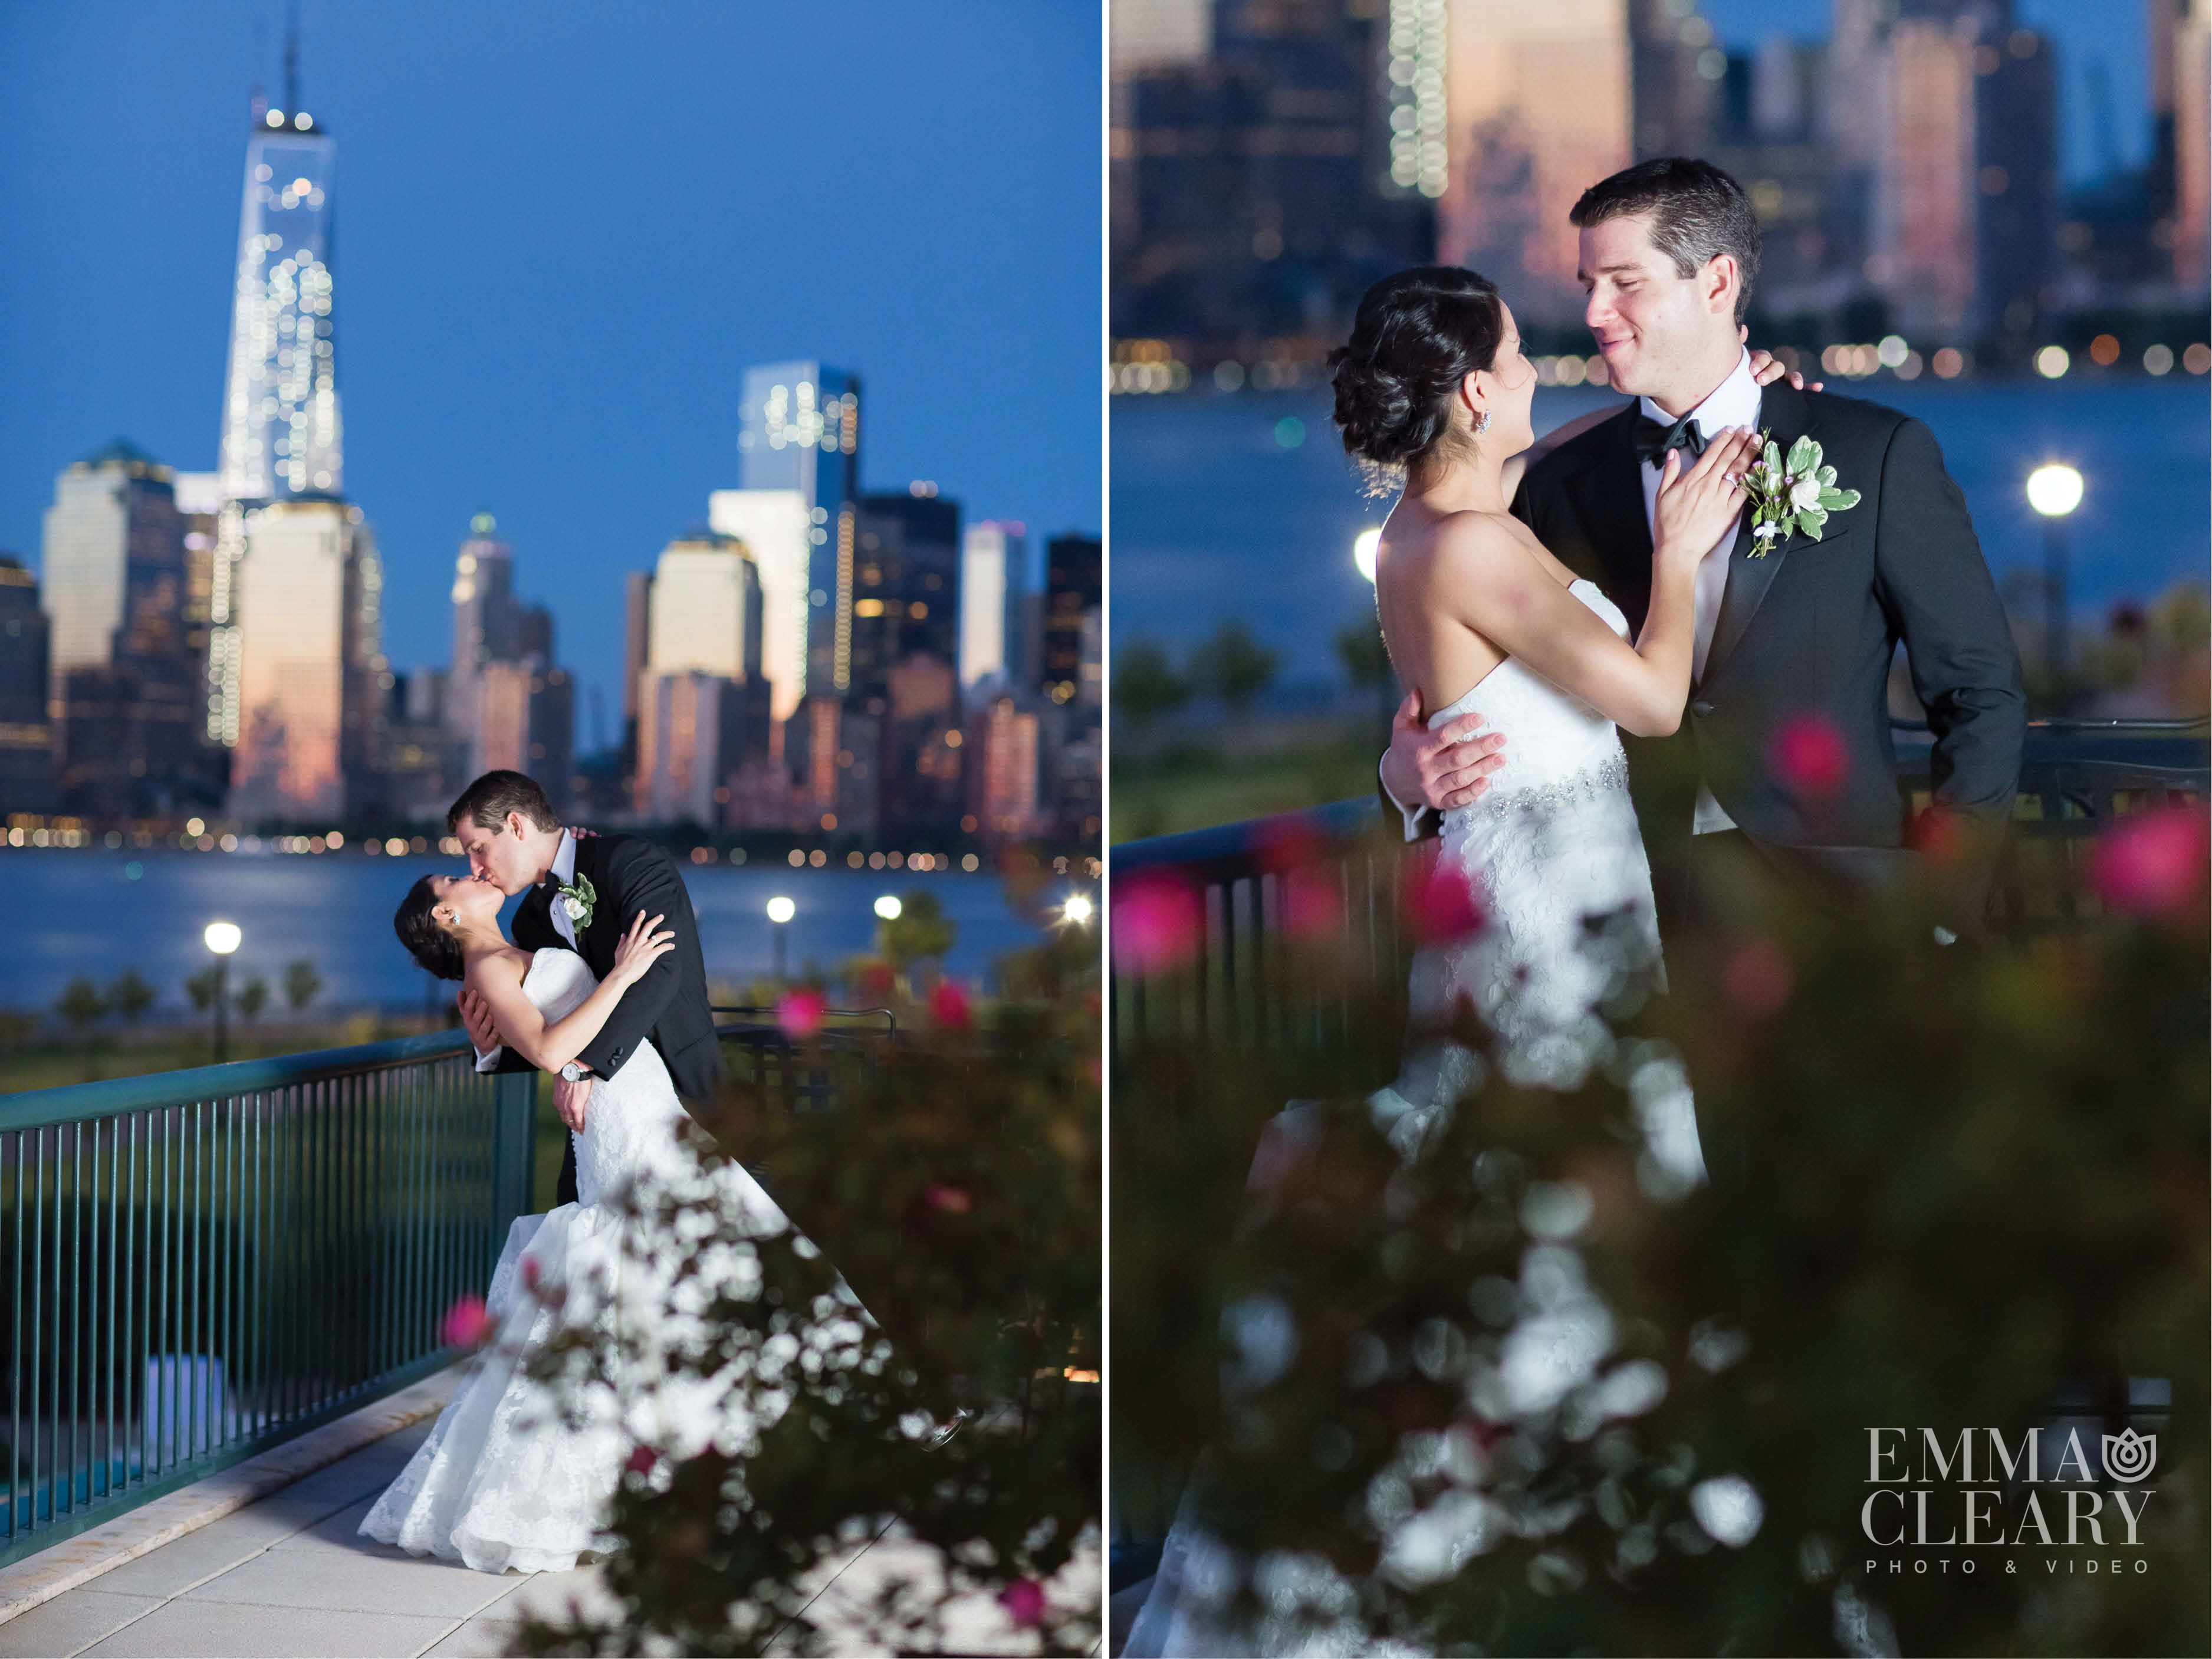 emma_cleary_photography-liberty-house-wedding24